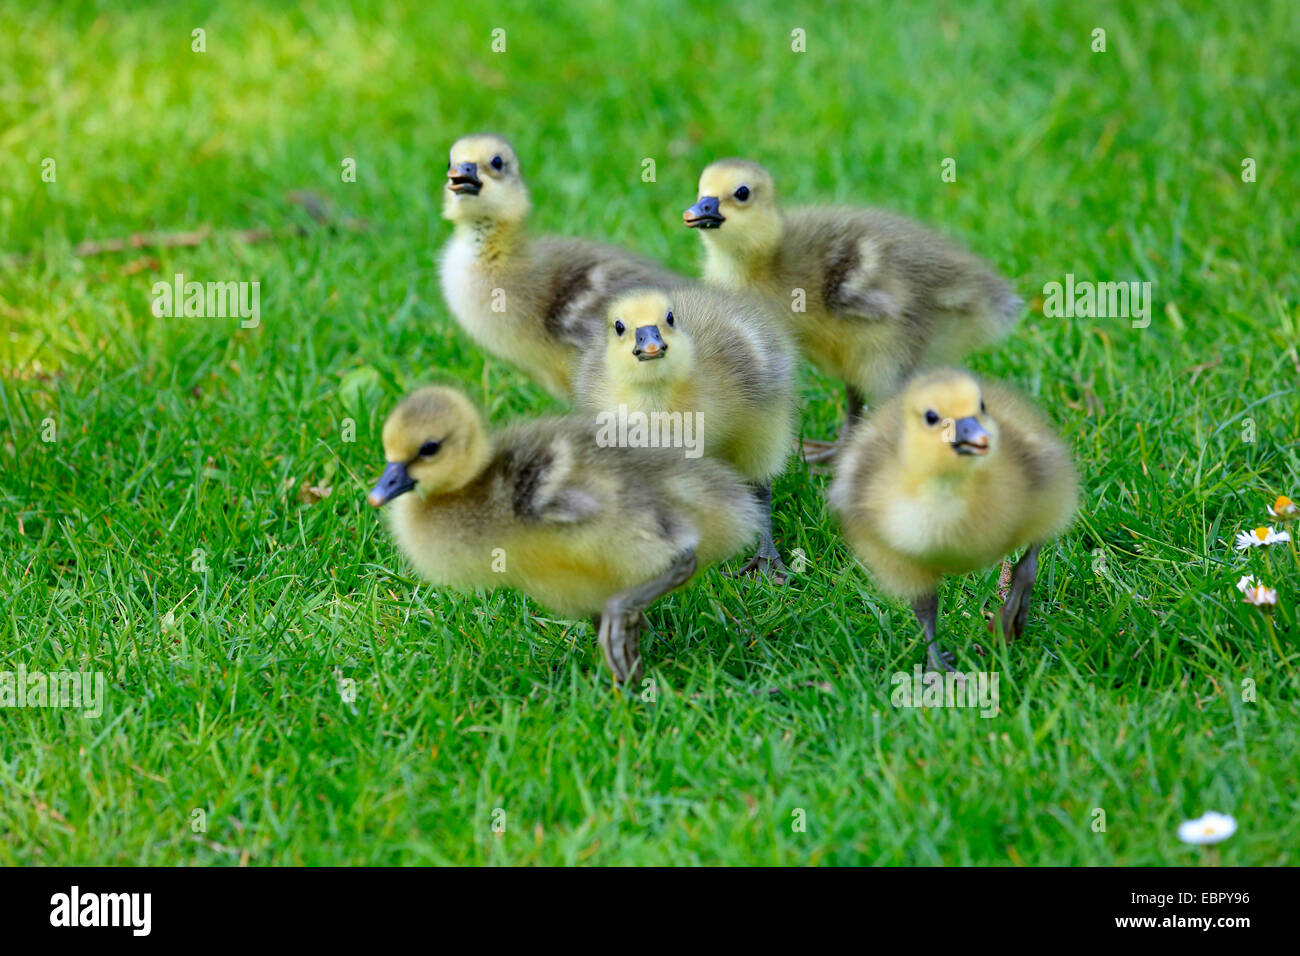 greylag goose (Anser anser), goose chicks in a meadow, Germany Stock Photo